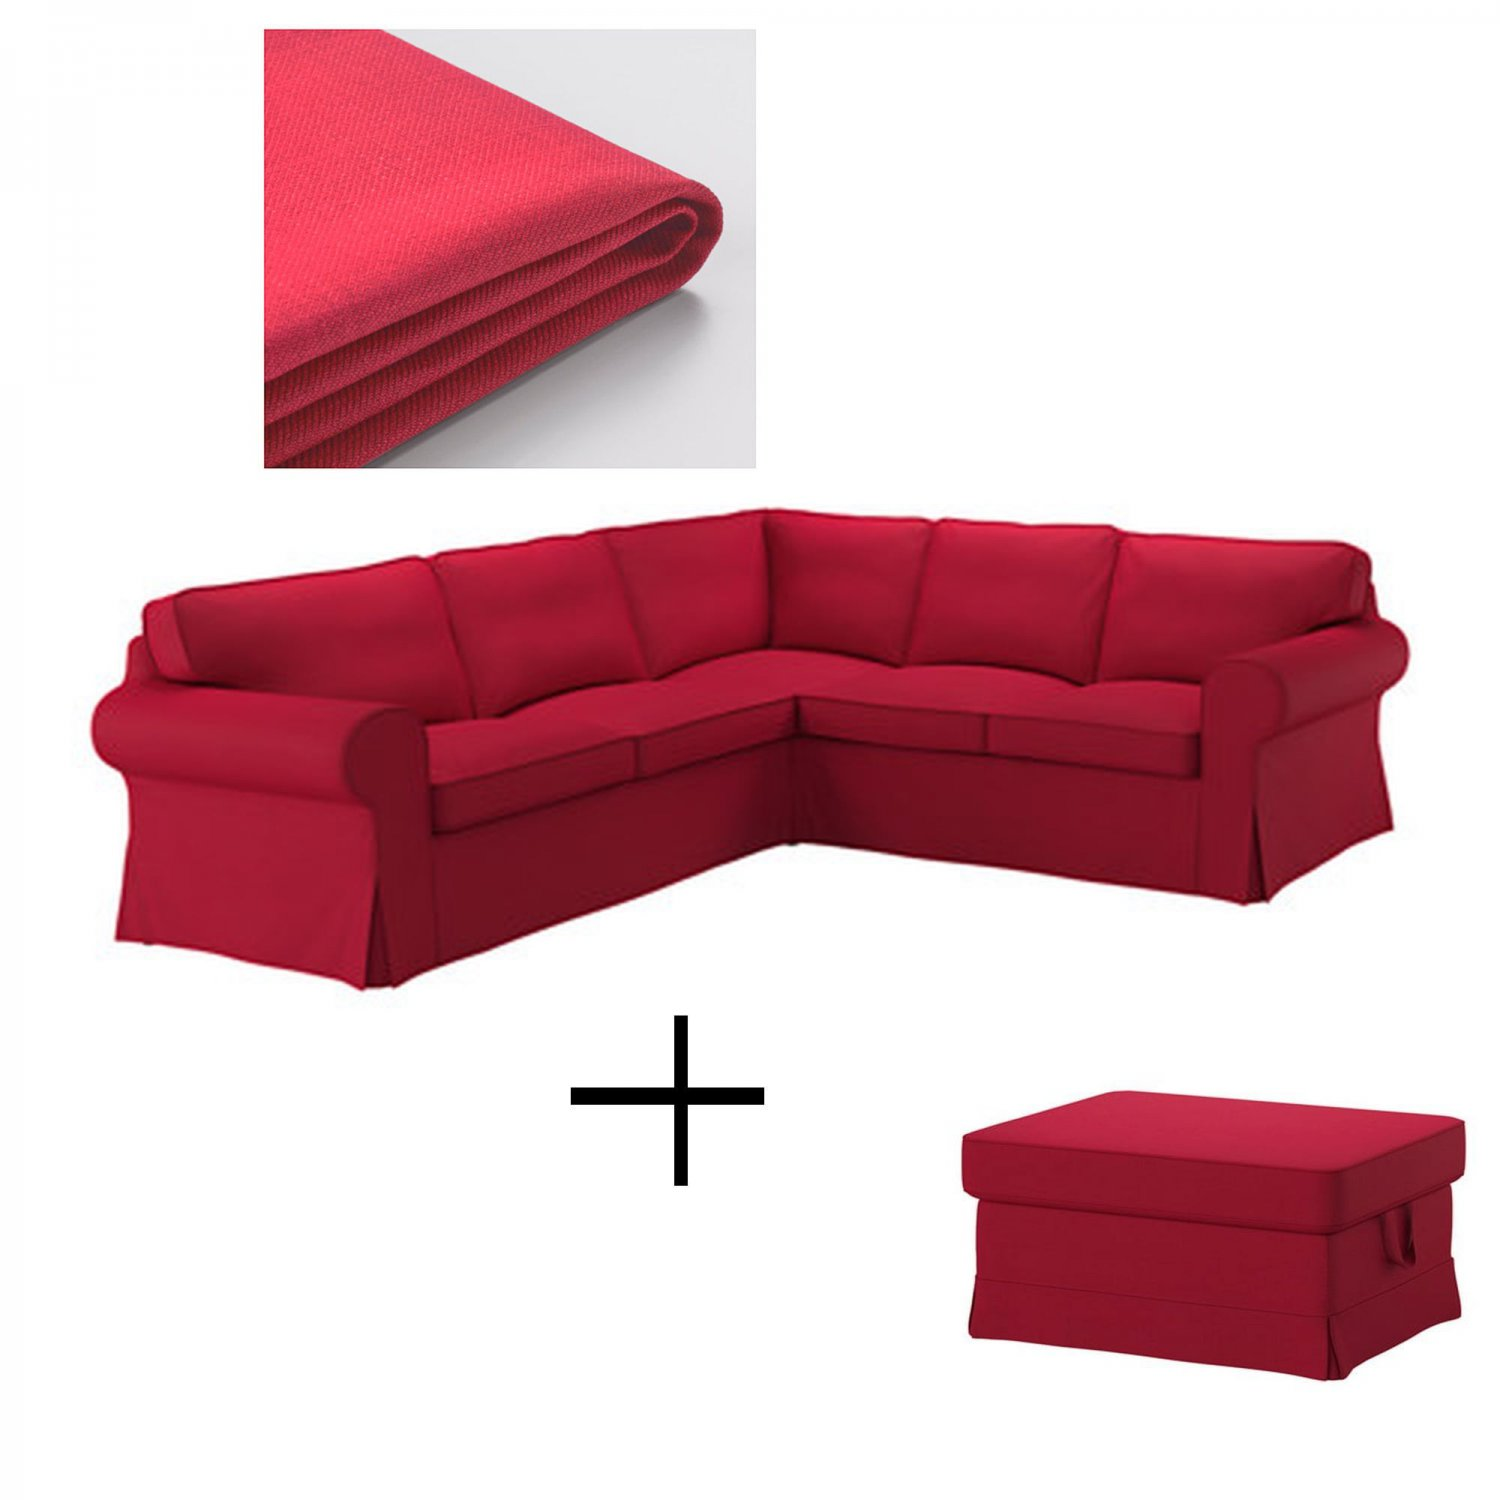 IKEA Ektorp 2+2 Corner Sofa and Footstool Slipcovers NORDVALLA RED 4 Seat Sectional Ottoman Covers